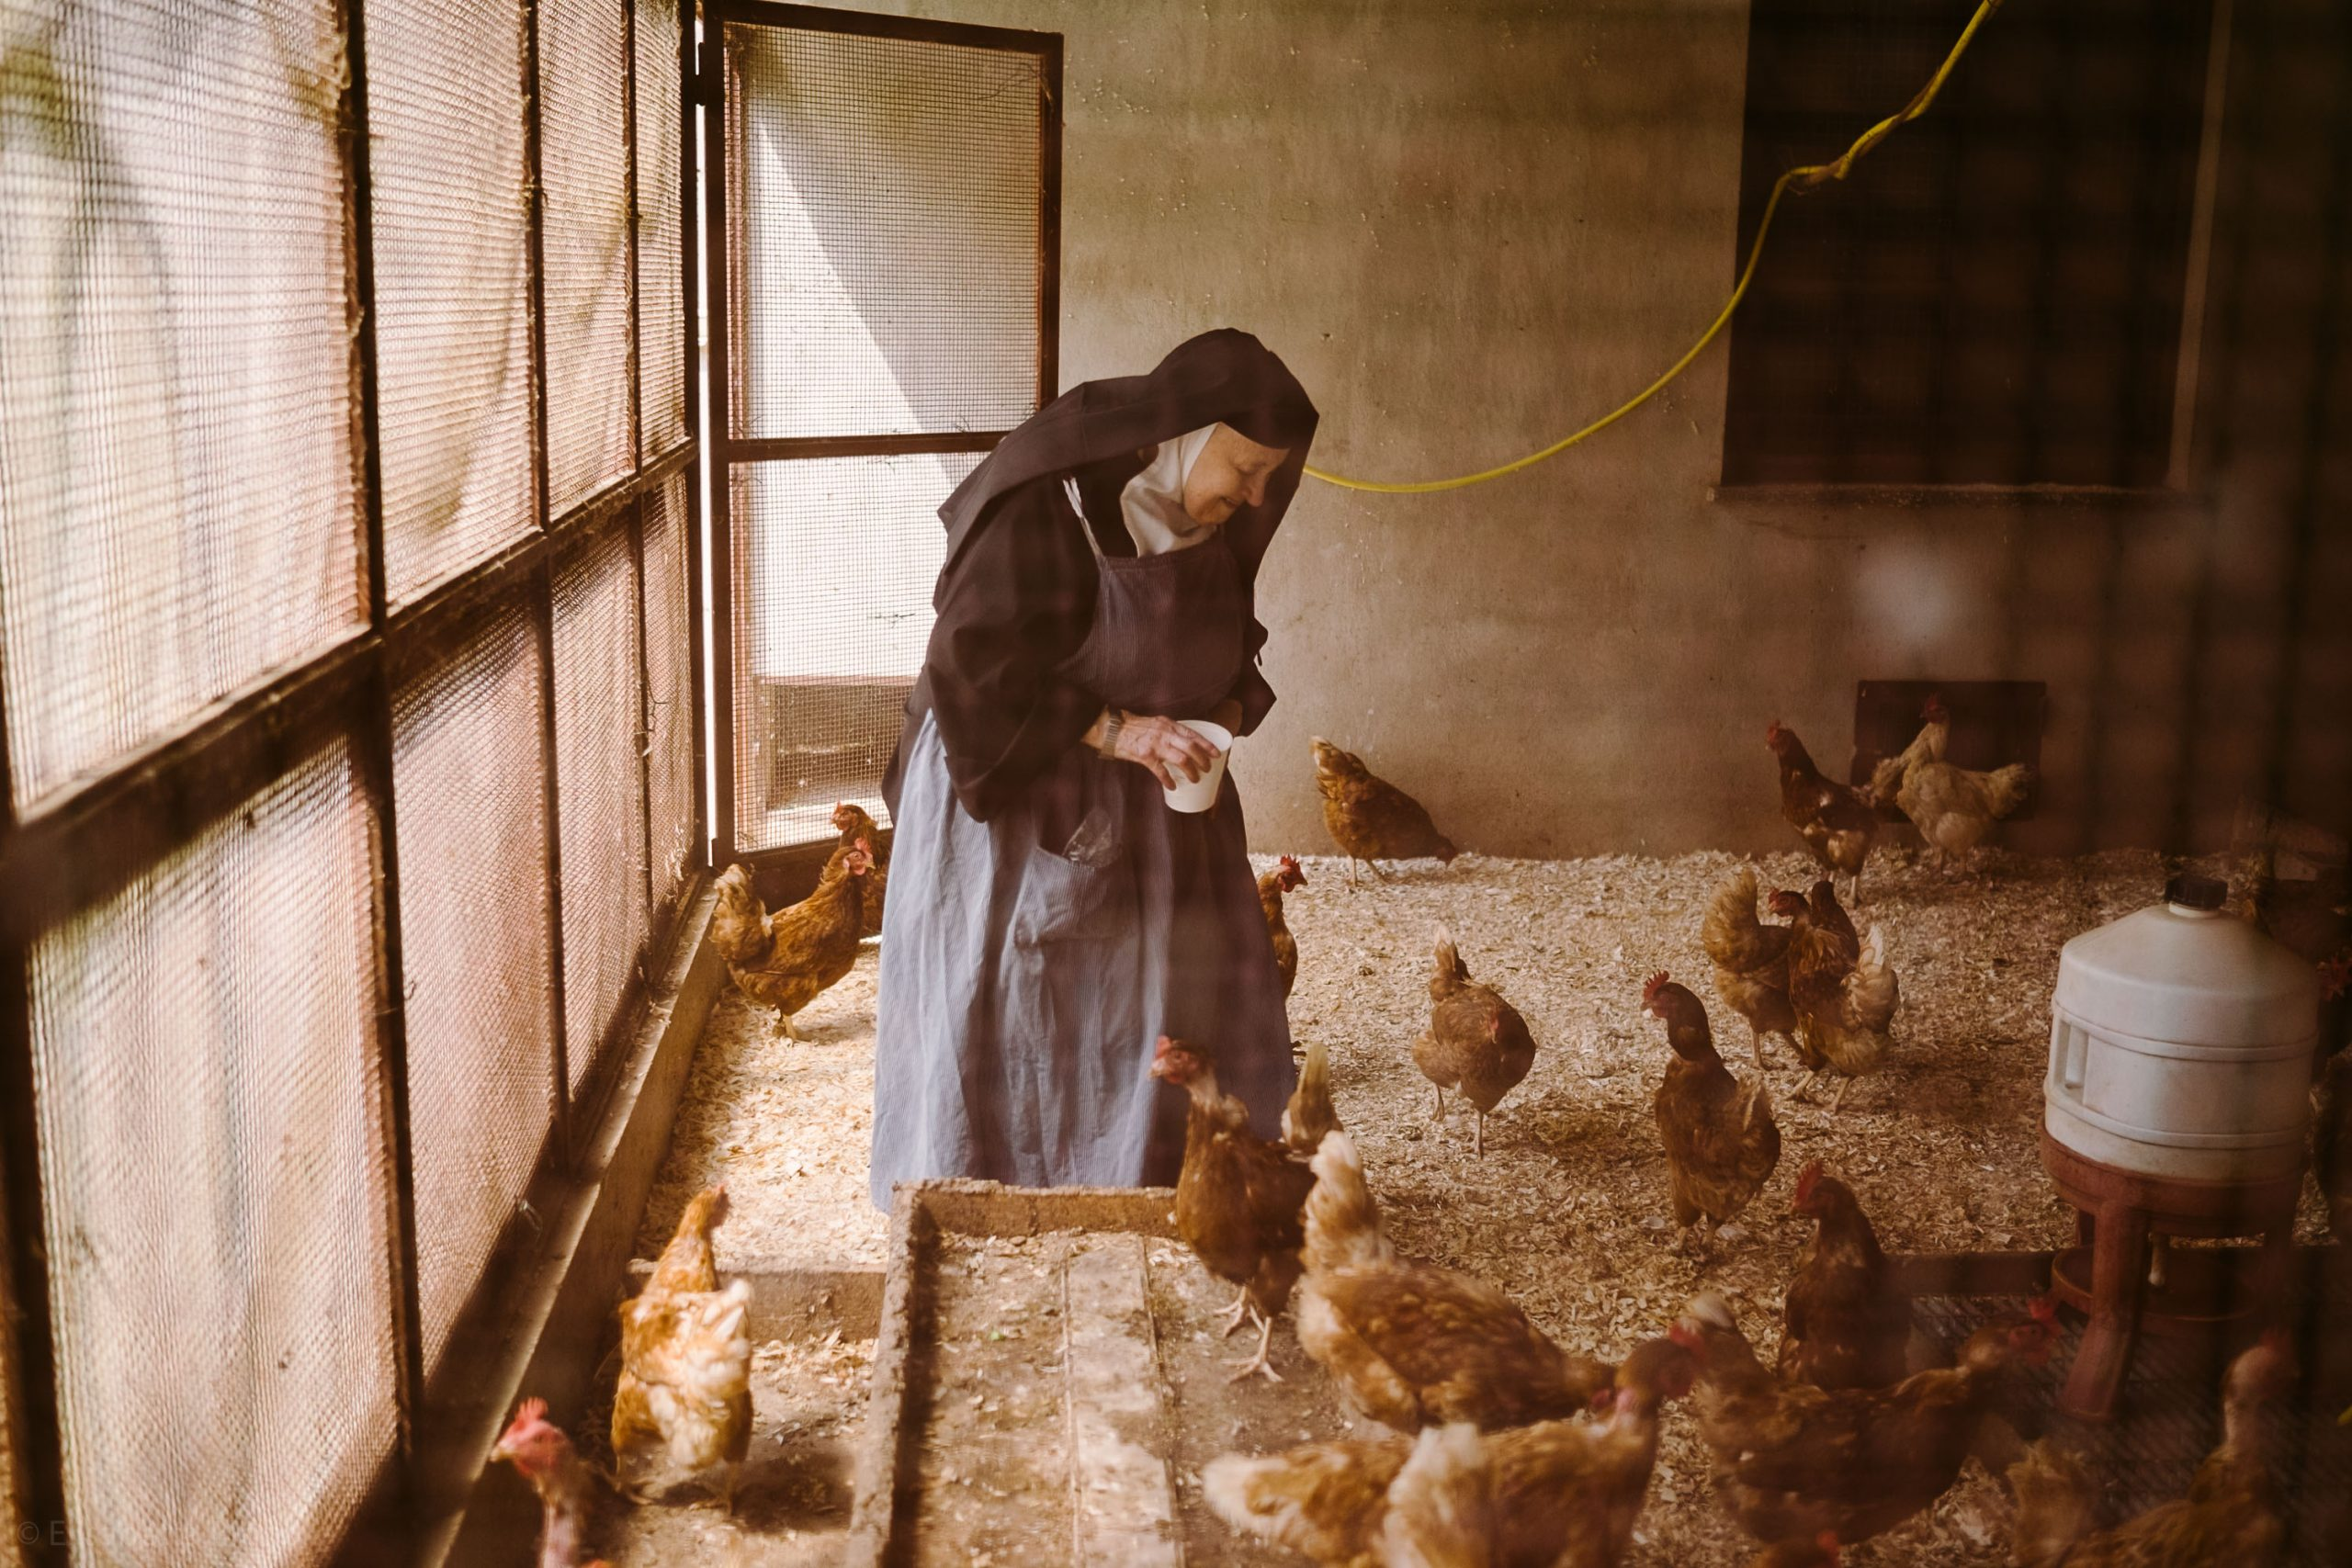 elisabetta riccio - from the clausus project, a nun while feeding the hens